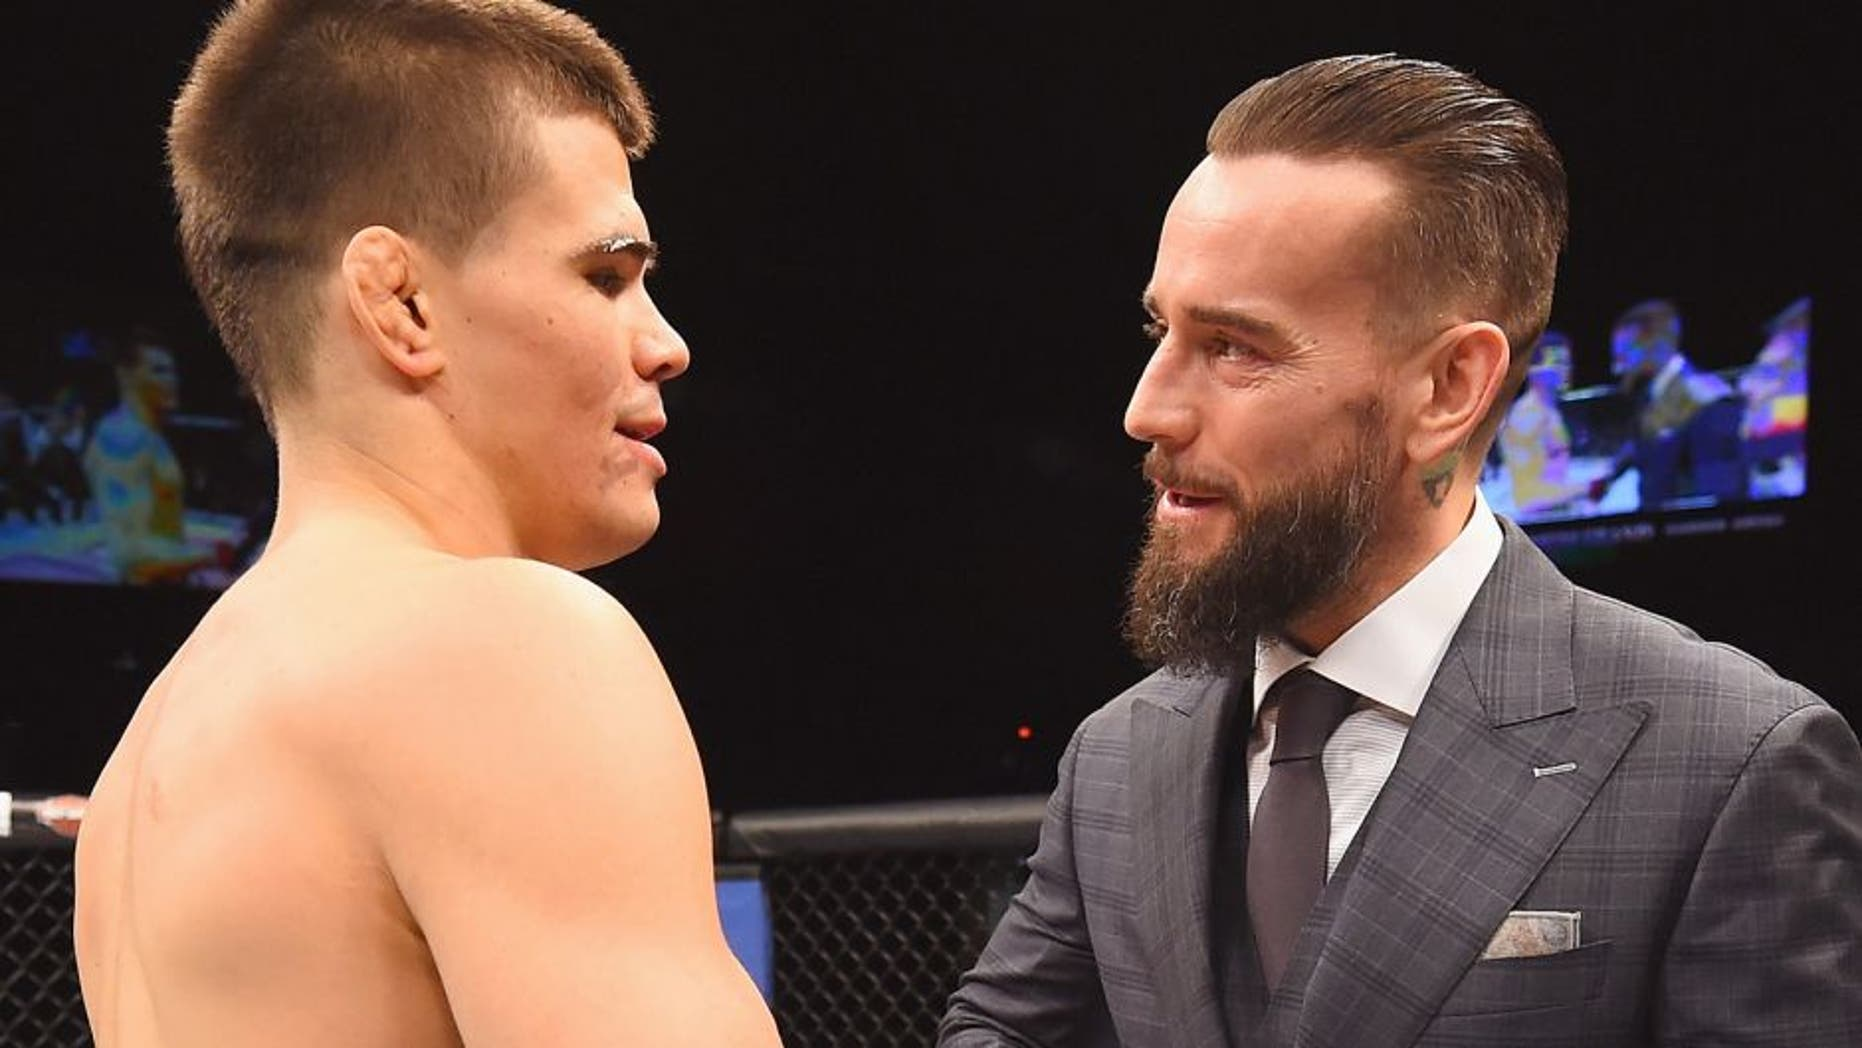 LAS VEGAS, NV - FEBRUARY 06: (R-L) Phil 'CM Punk' Brooks congratulates Mickey Gall after Gall's victory over Mike Jackson during the UFC Fight Night event at MGM Grand Garden Arena on February 6, 2016 in Las Vegas, Nevada. (Photo by Jeff Bottari/Zuffa LLC/Zuffa LLC via Getty Images)